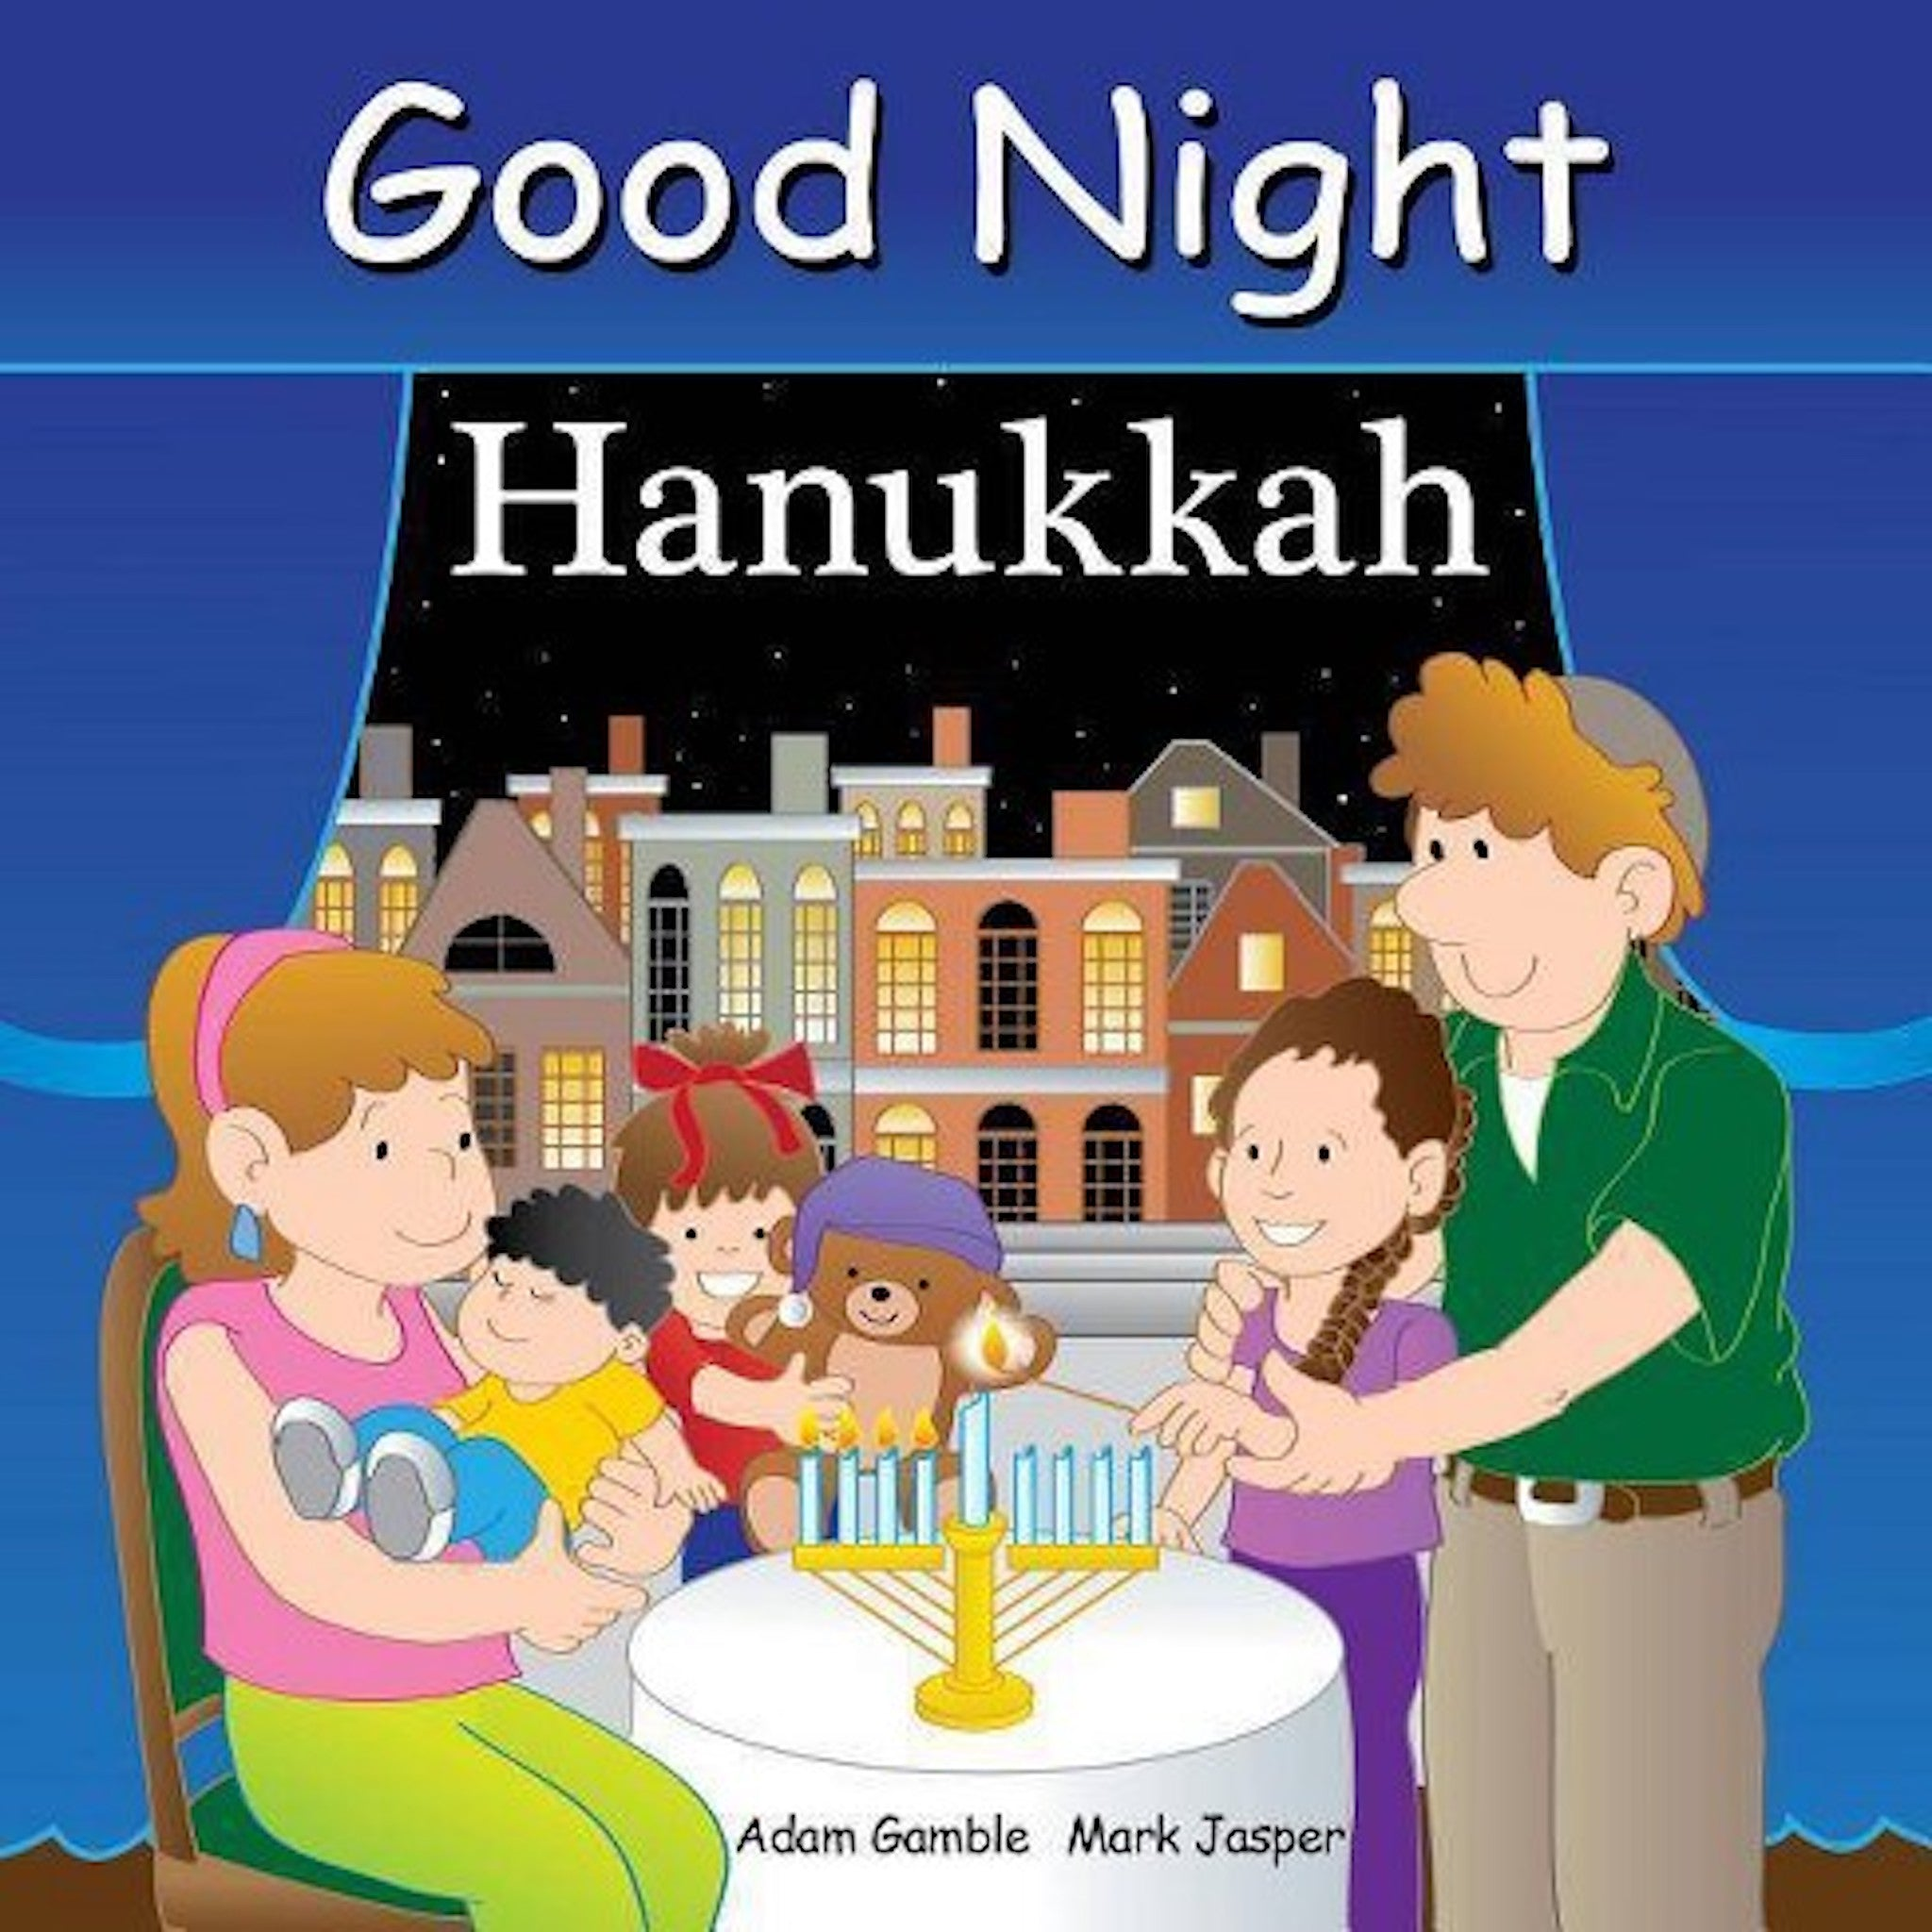 Good Night Hanukkah written by Adam Gambler and illustrated by Mark Jasper